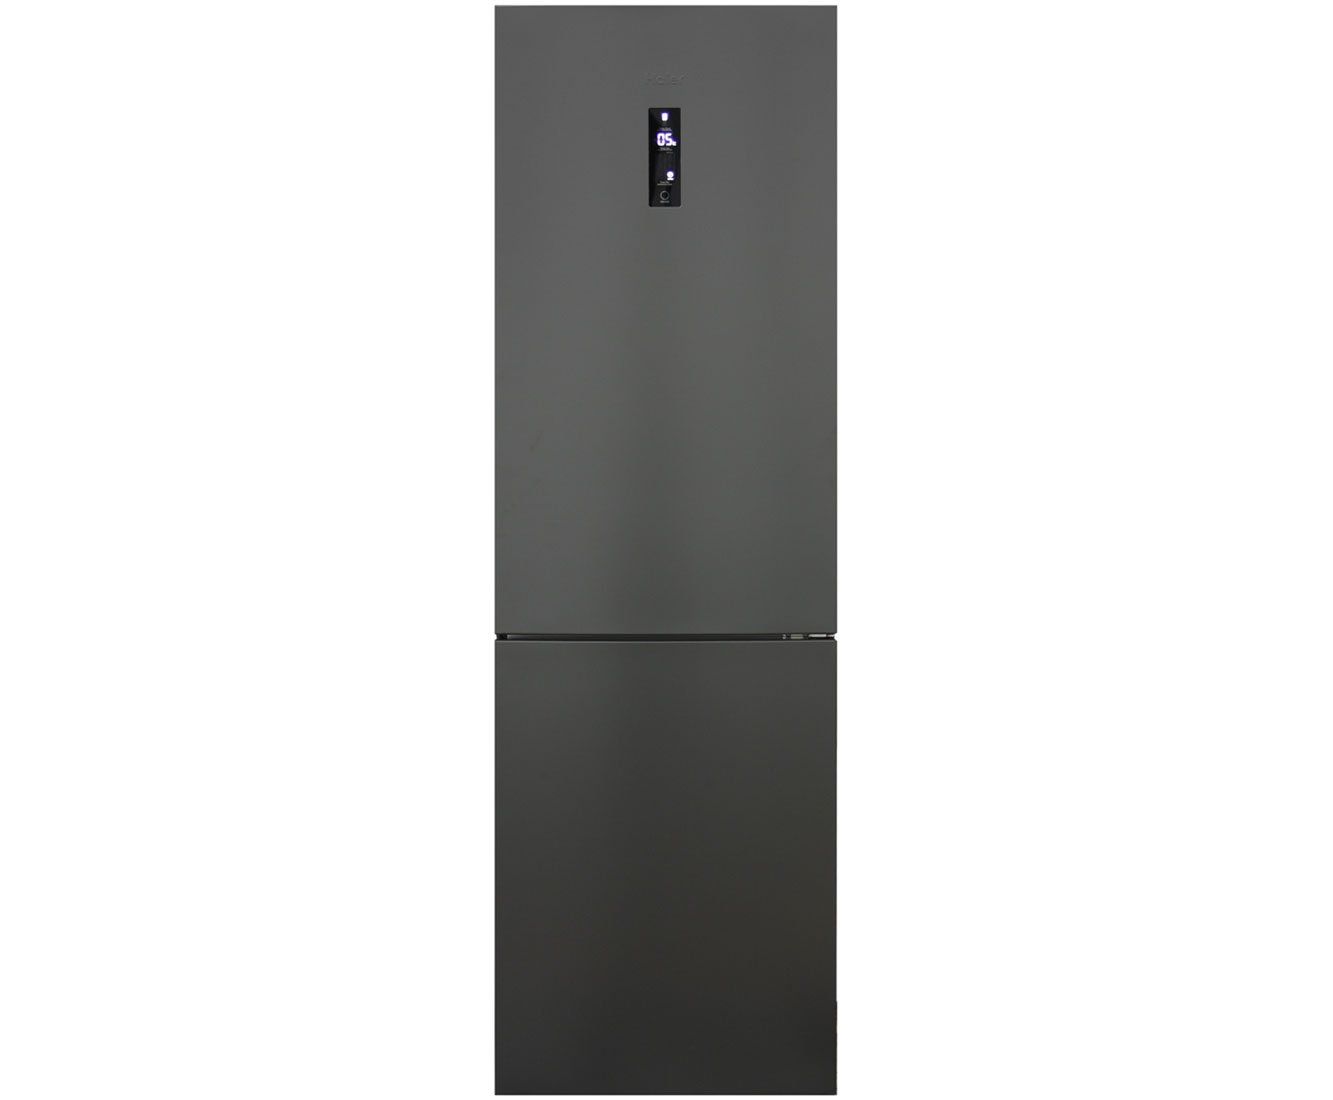 Haier C2FE636CBJ Free Standing Fridge Freezer Frost Free in Black